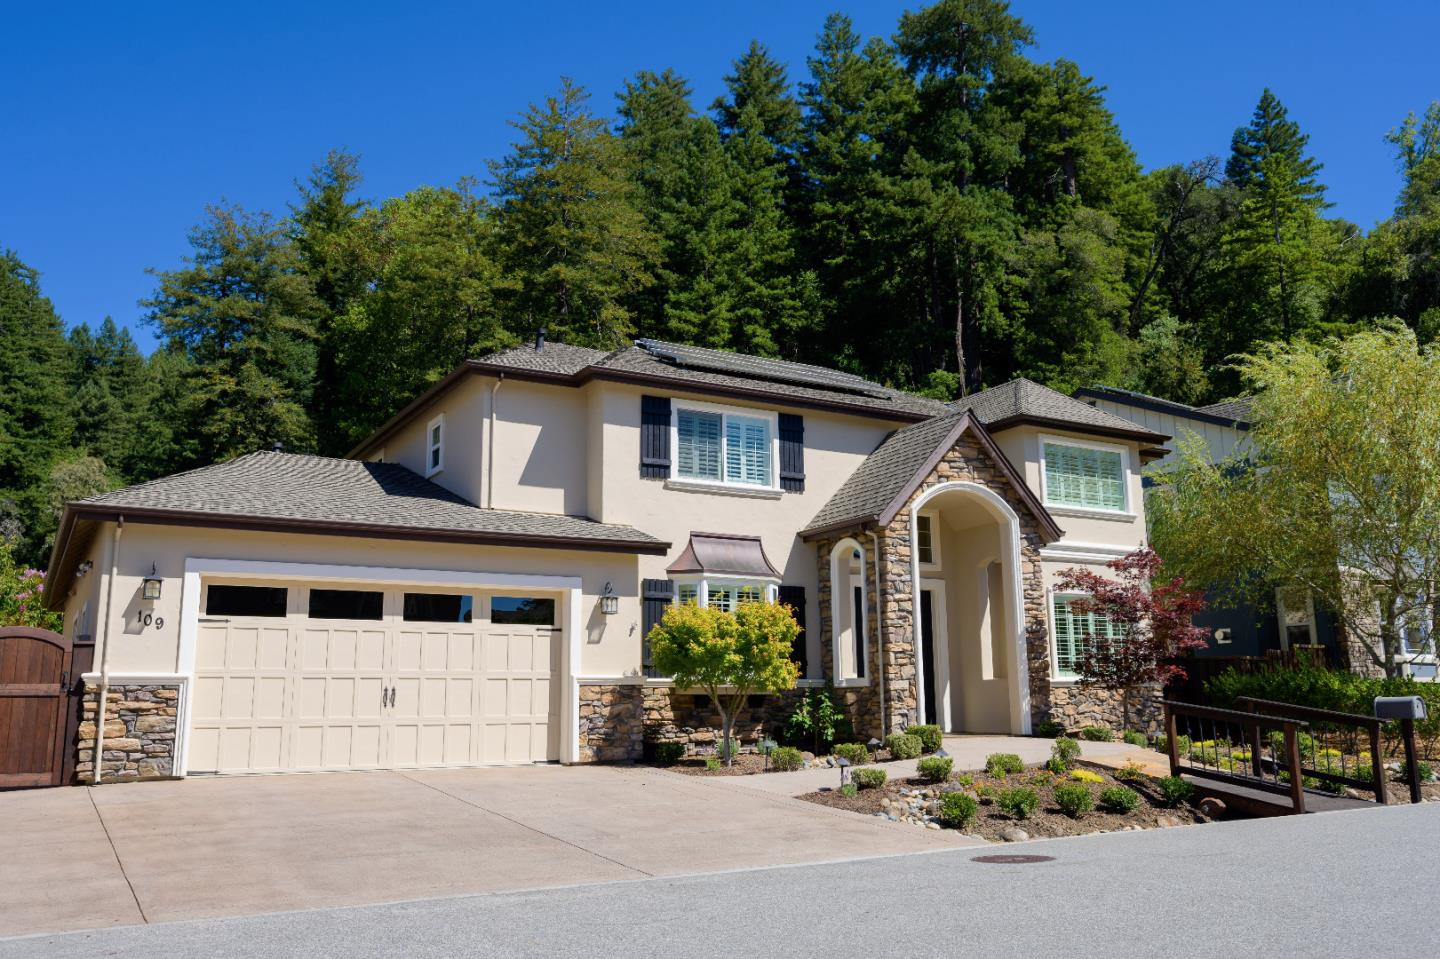 ABSOLUTELY SPECTACULAR EXECUTIVE HOME IN GATED COMMUNITY in beautiful SCOTTS VALLEY! This home is absolutely LOADED with so many incredible features including SOLAR and an incredible spacious lot that features an outdoor kitchen, pavilion, fire-pit and lots of grass for the kids and pets! It also backs up to the hills with acres and acres or hiking trails and all the beauty that this community offers. Inside you will walk in to a beautiful double-door entry, high ceilings and wood flooring throughout the downstairs area. Lots of beautiful double-pane windows that bring the outside in everywhere! OH MY GOODNESS.. What an INCREDIBLE KITCHEN! Lots of granite counter-tops over beautiful wood cabinets, stainless steel appliances and a large center island. Just a DREAM! Separate family room and living room each have their own beautiful fireplaces. The master bedroom suite is spectacular with large walk-in closet and a bathroom that just WOW's you! Large bonus room downstairs can be 5th bdrm.